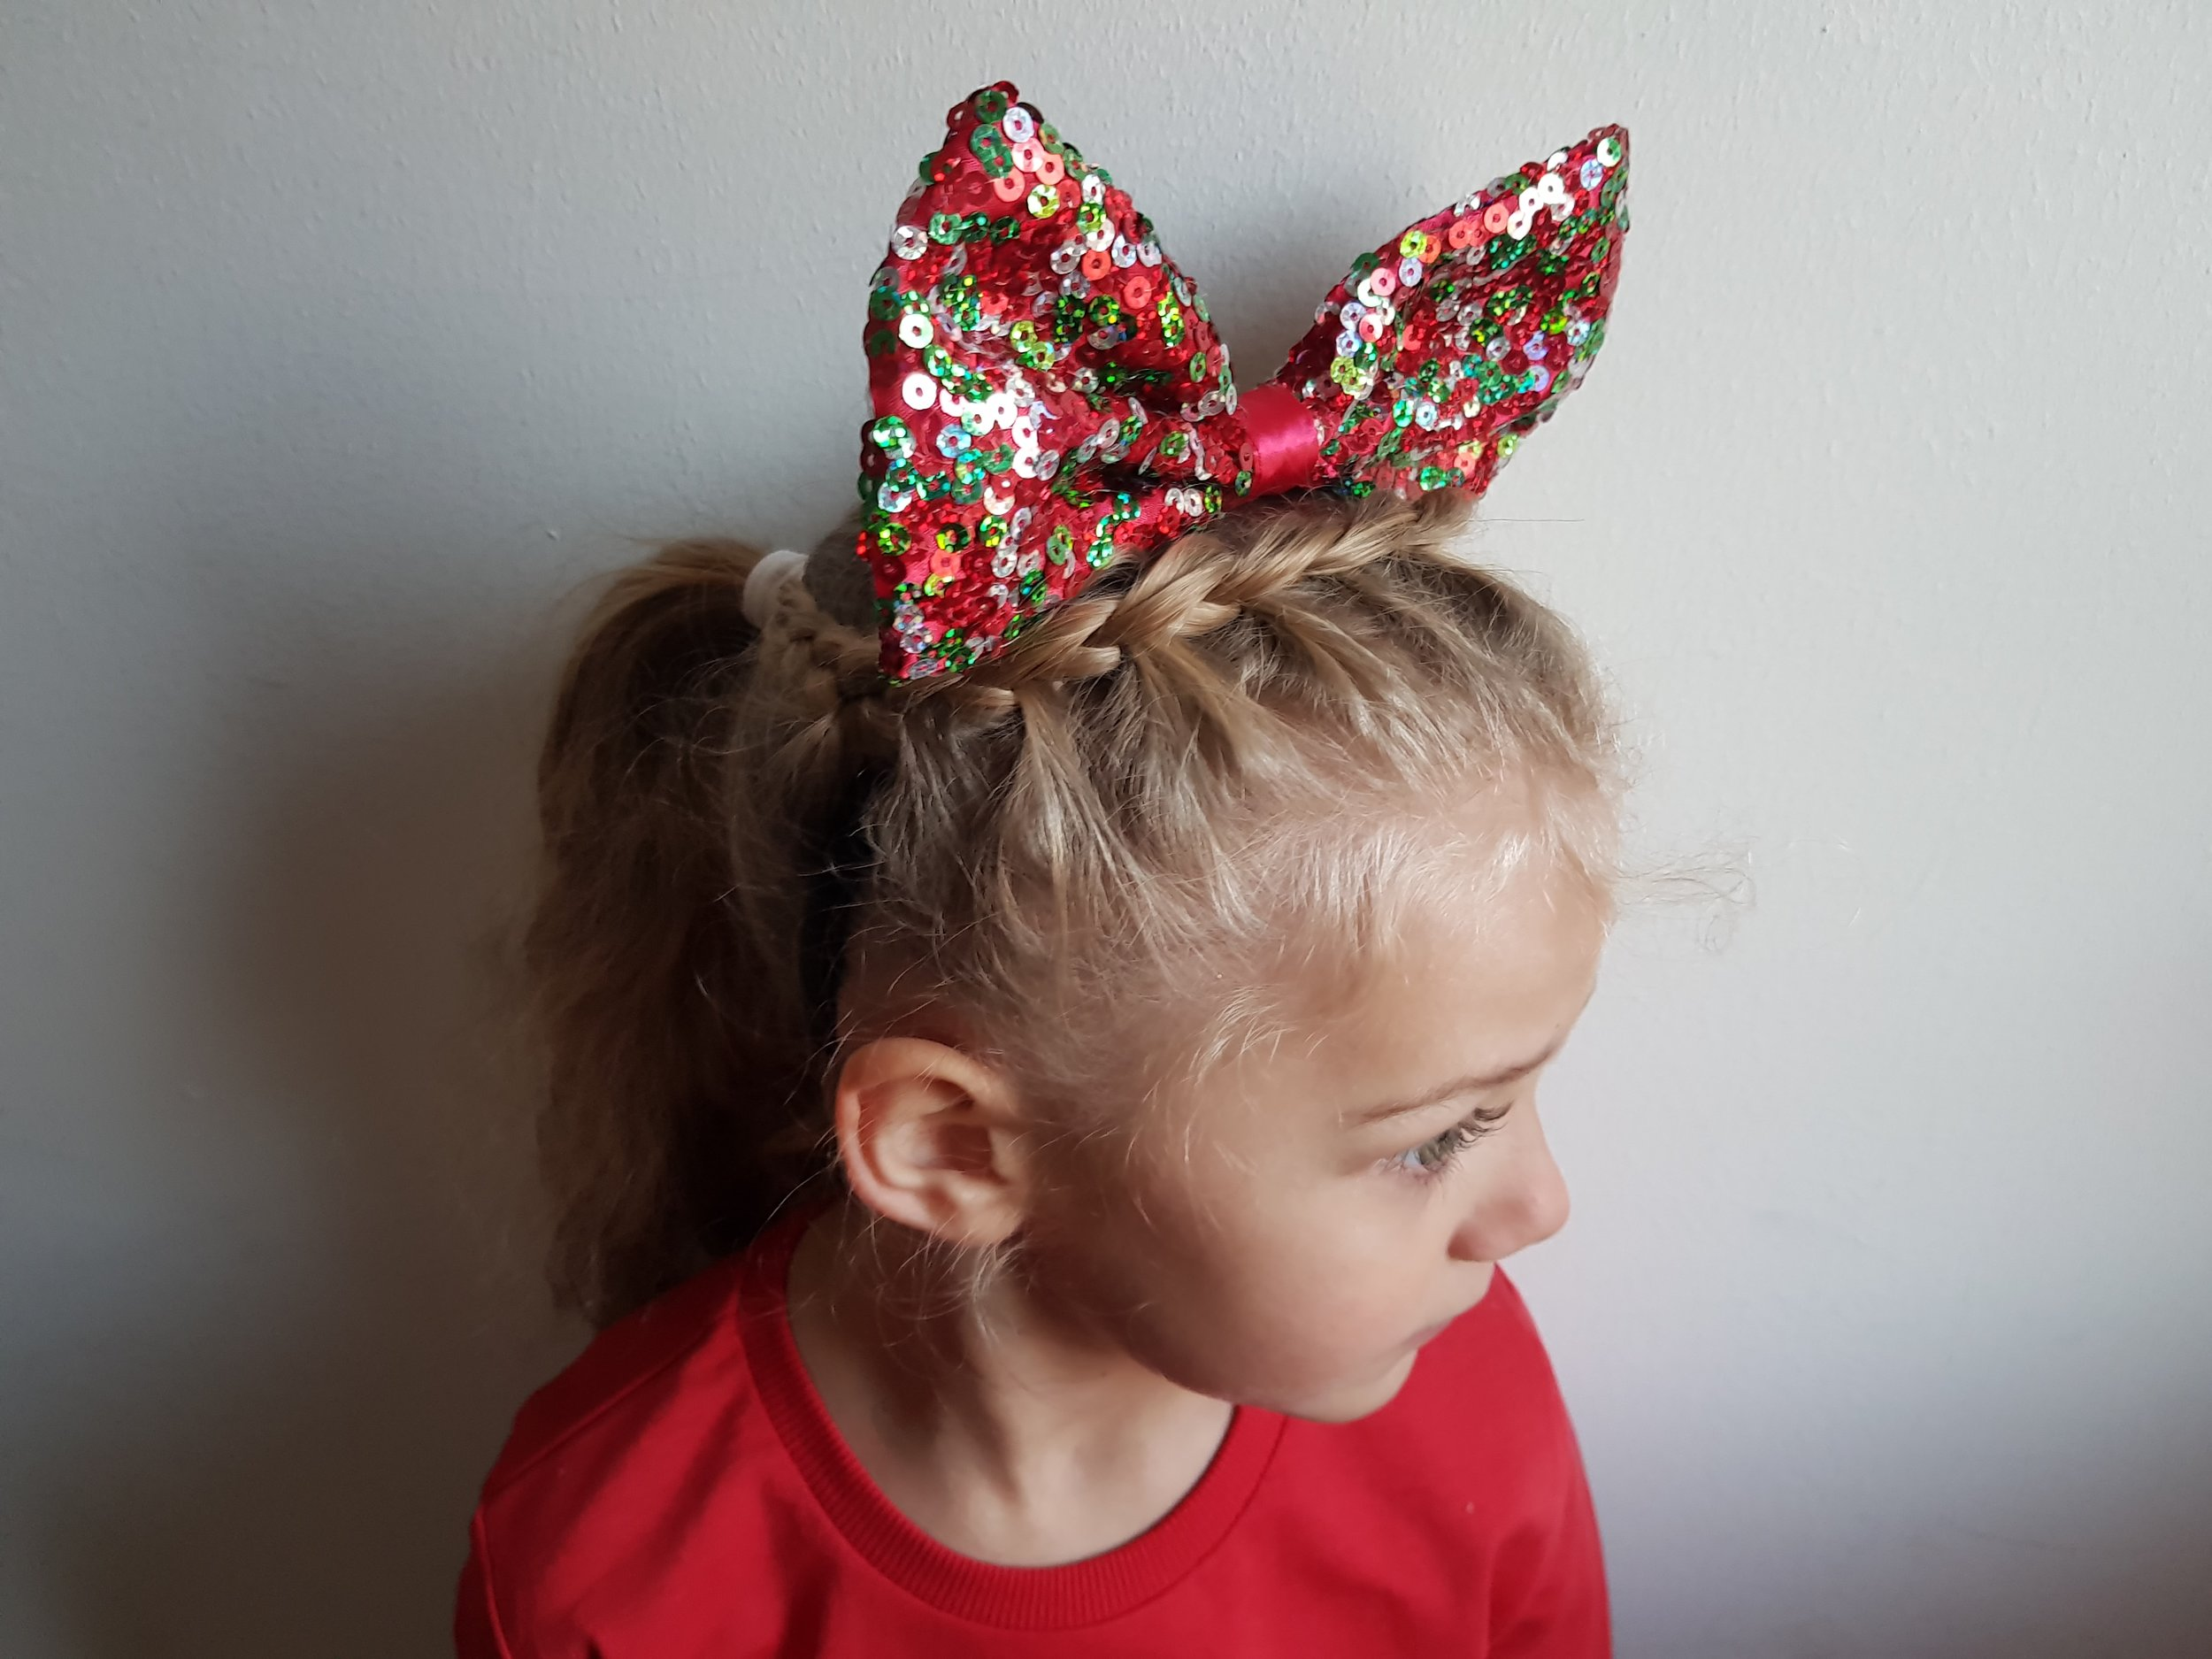 Giant bow headband from Primark